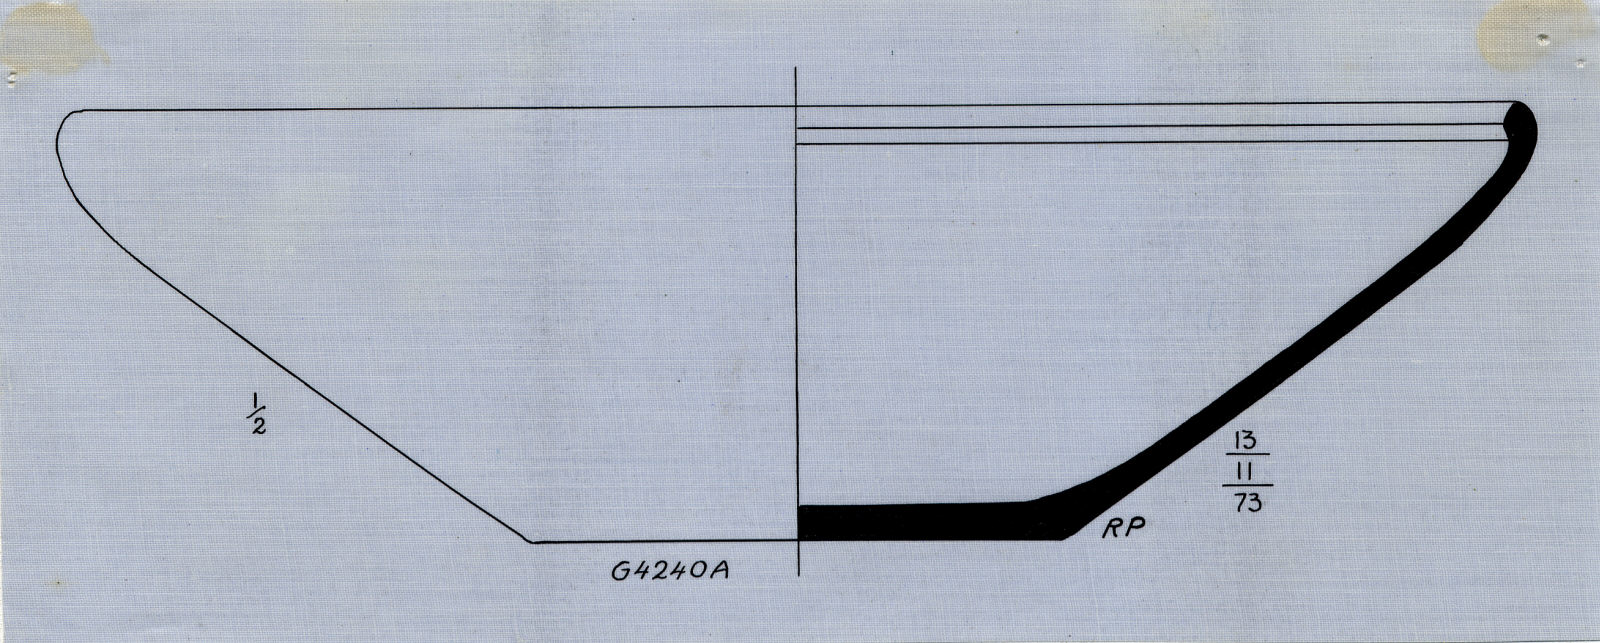 Drawings: G 4240, Shaft A: pottery, bowl